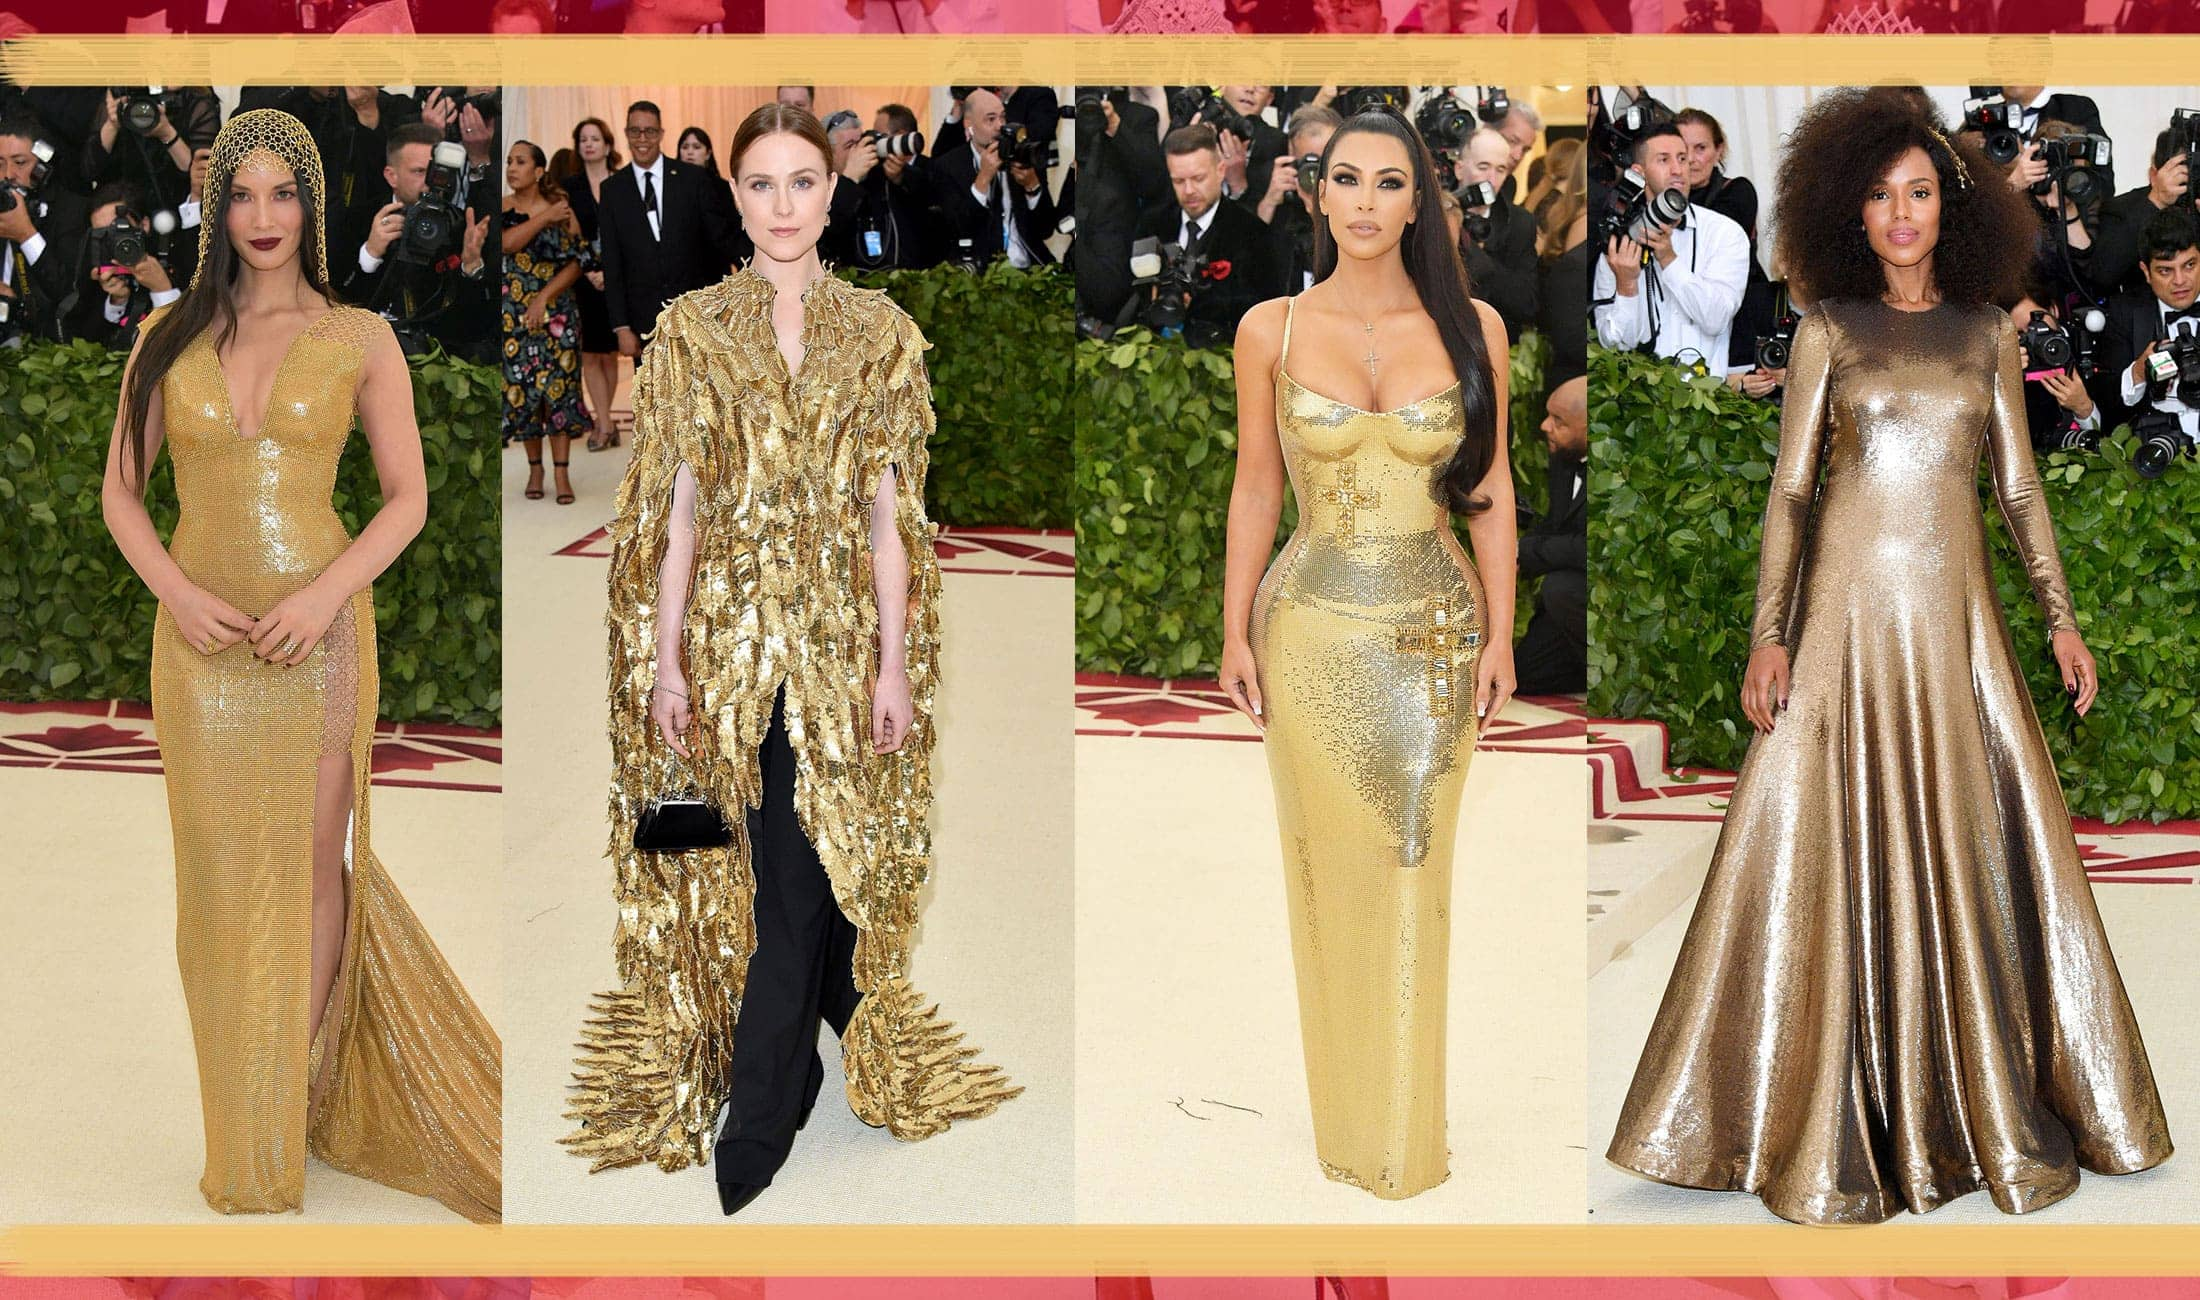 Fashion, Fashionblog, Fashion Magazine, Editorial, Style, Style Guide, Style Inspiration, Met Gala, New York, Fashion, Fashion World, Fashion Event, Glamour, Red Carpet, Celebrities, Gowns, Trends, Dresses, Princess Mood, Metallic, Silhouettes, Gold, Metallic